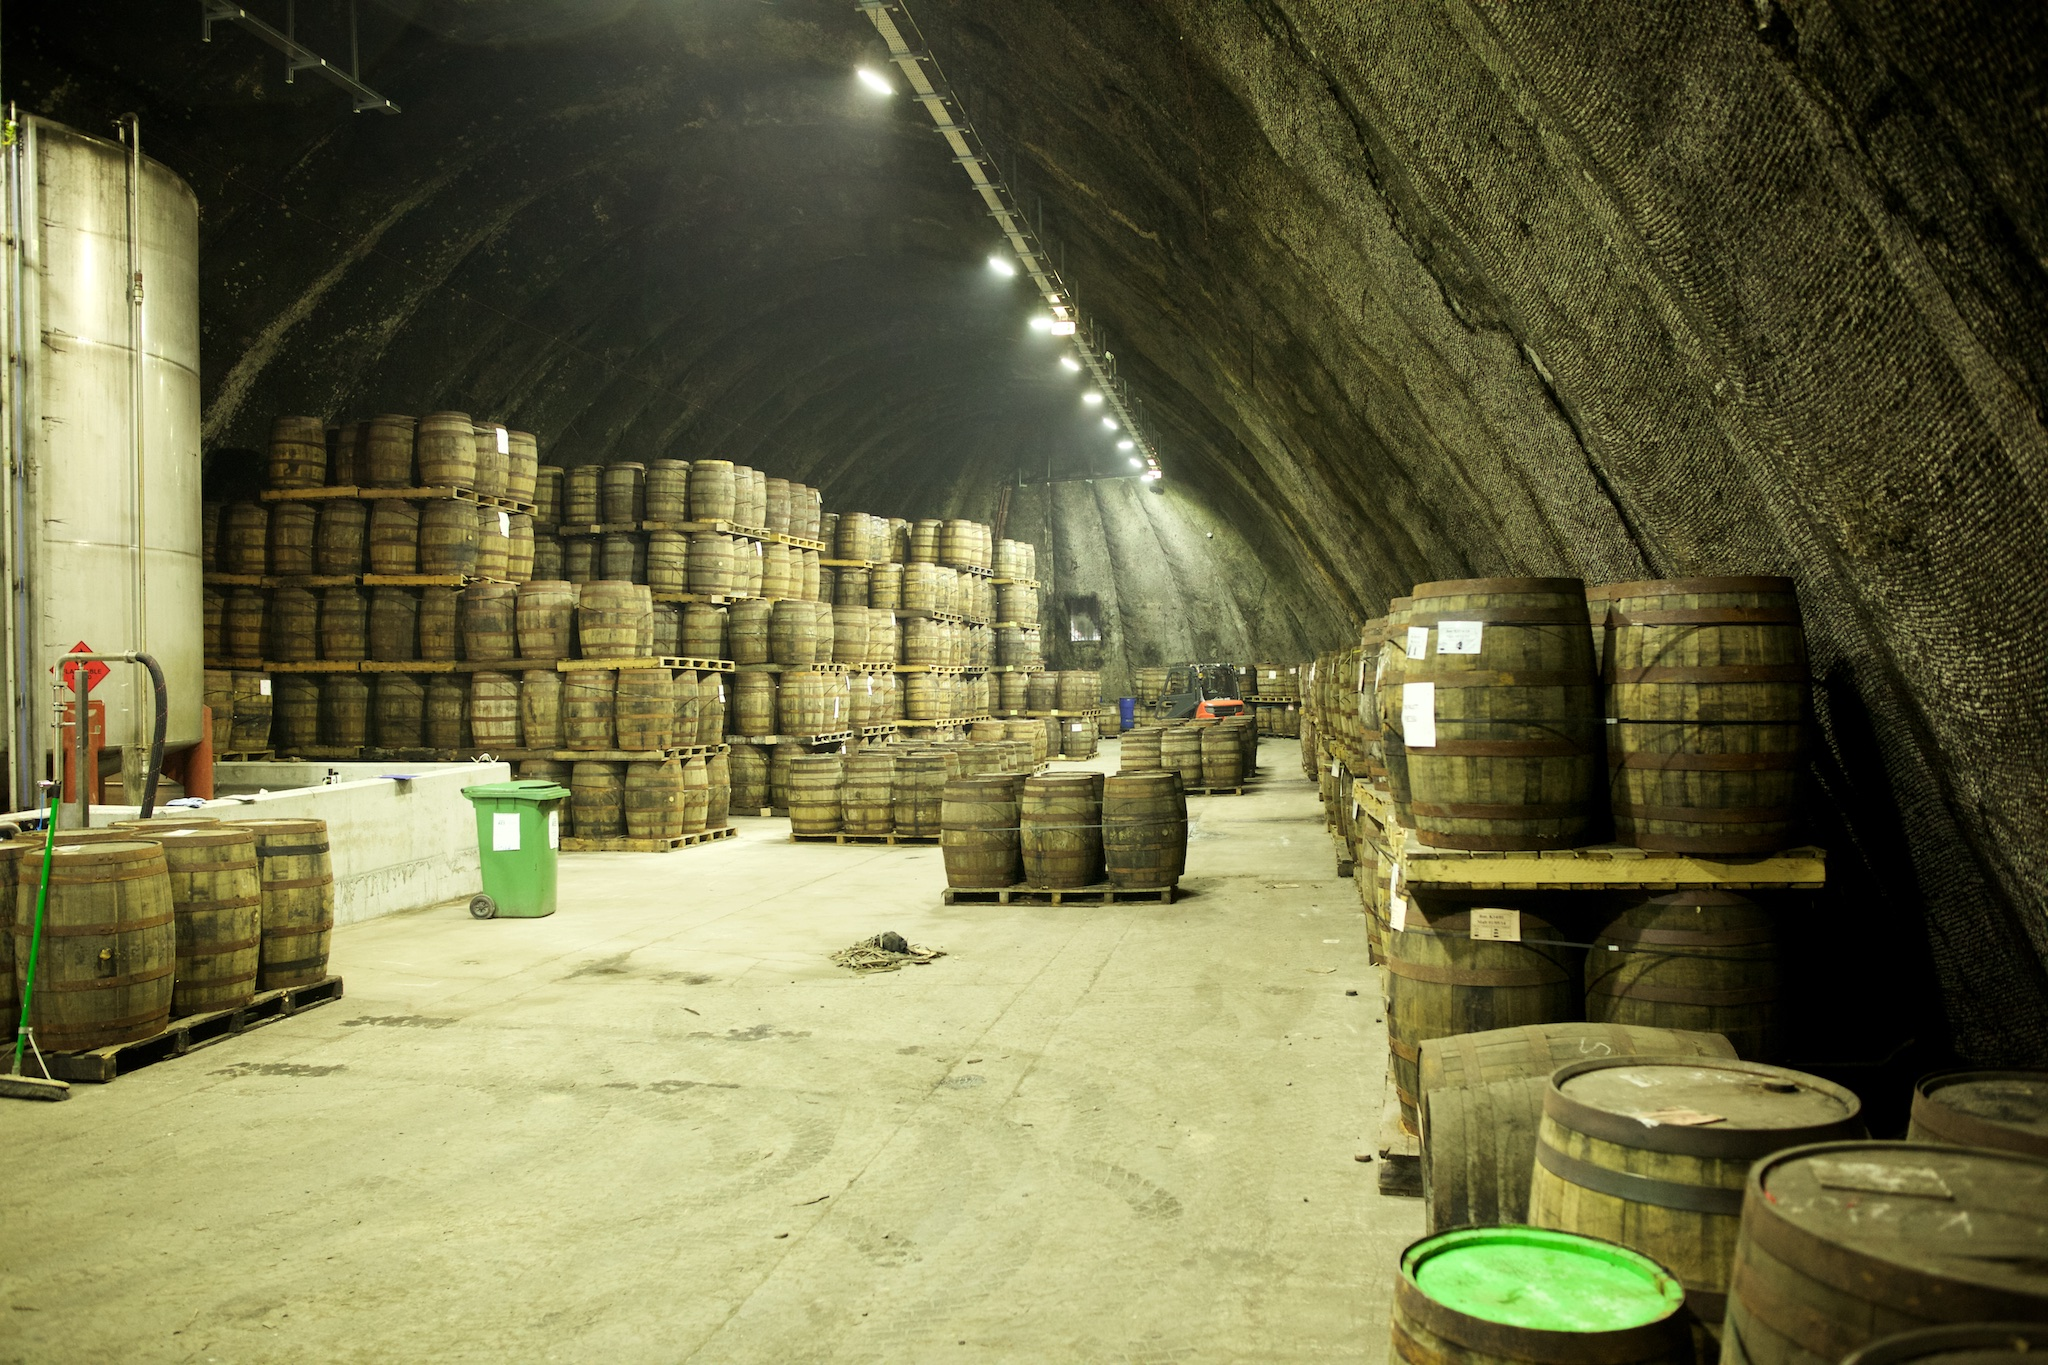 Kilbeggan whiskey distilary warehouse, Ireland